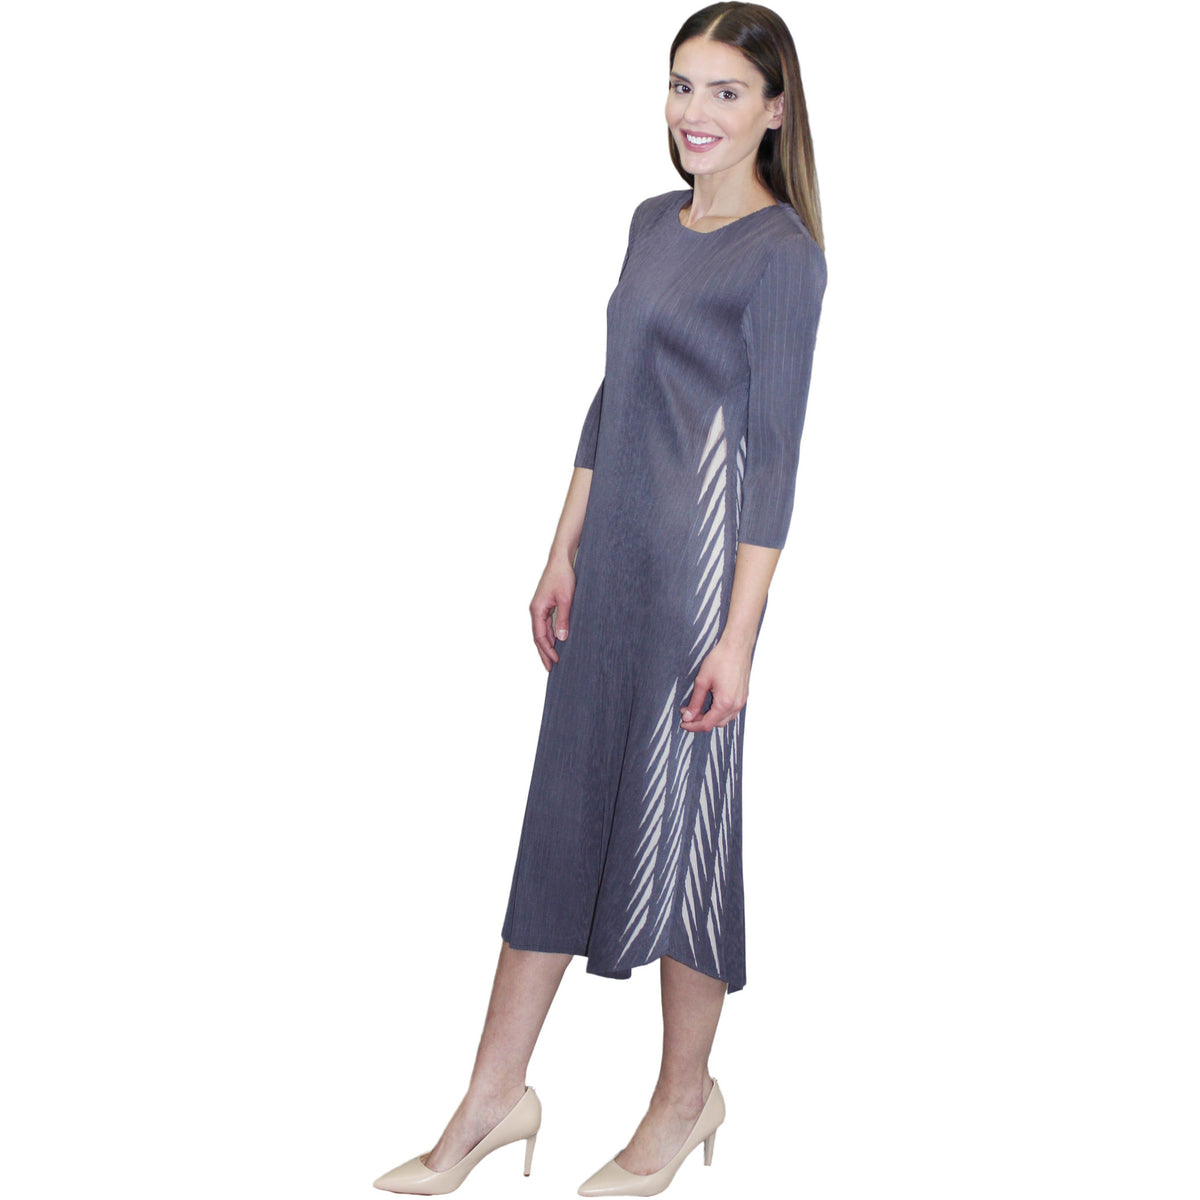 3/4 Sleeve Side Laser Cut Dress - Gray